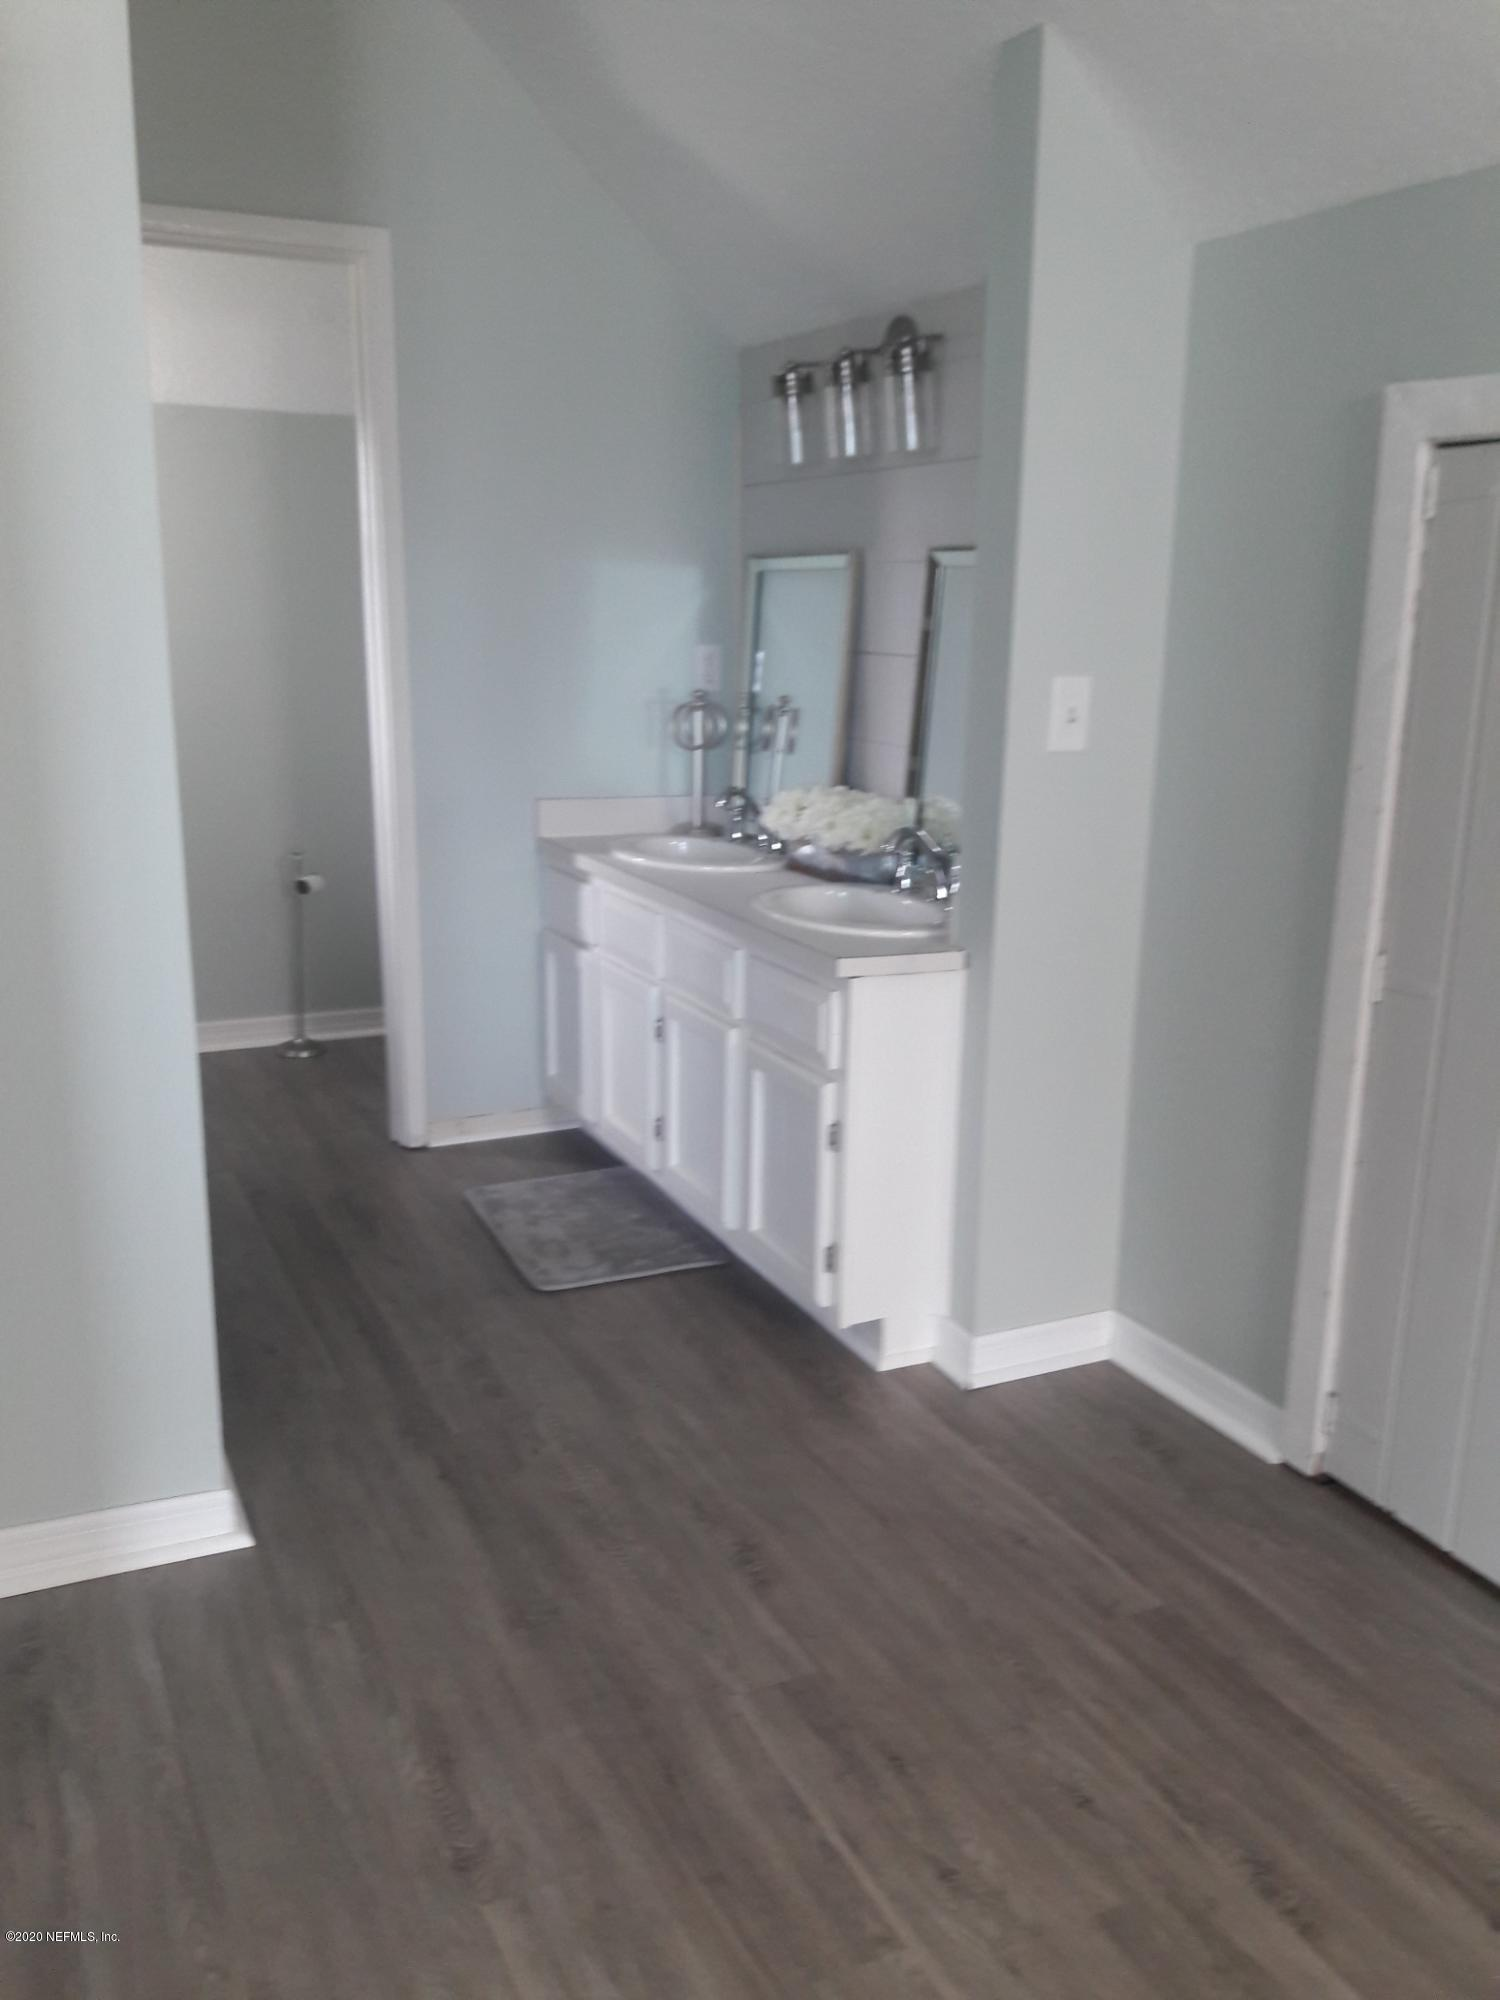 9345 OLD A1A, ST AUGUSTINE, FLORIDA 32080, 2 Bedrooms Bedrooms, ,Residential,For sale,OLD A1A,1083046